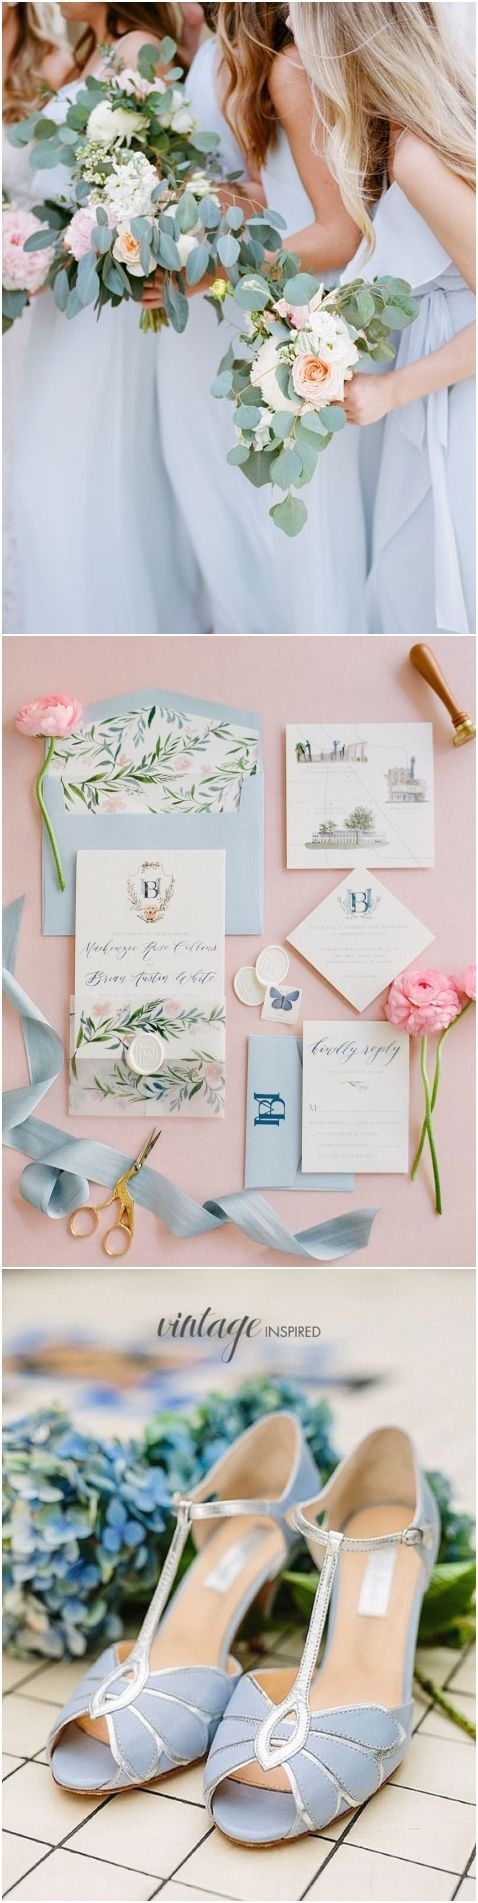 Wedding after party decorations january 2019 Top  Wedding Color Scheme Ideas for  Trends  Wedding Color